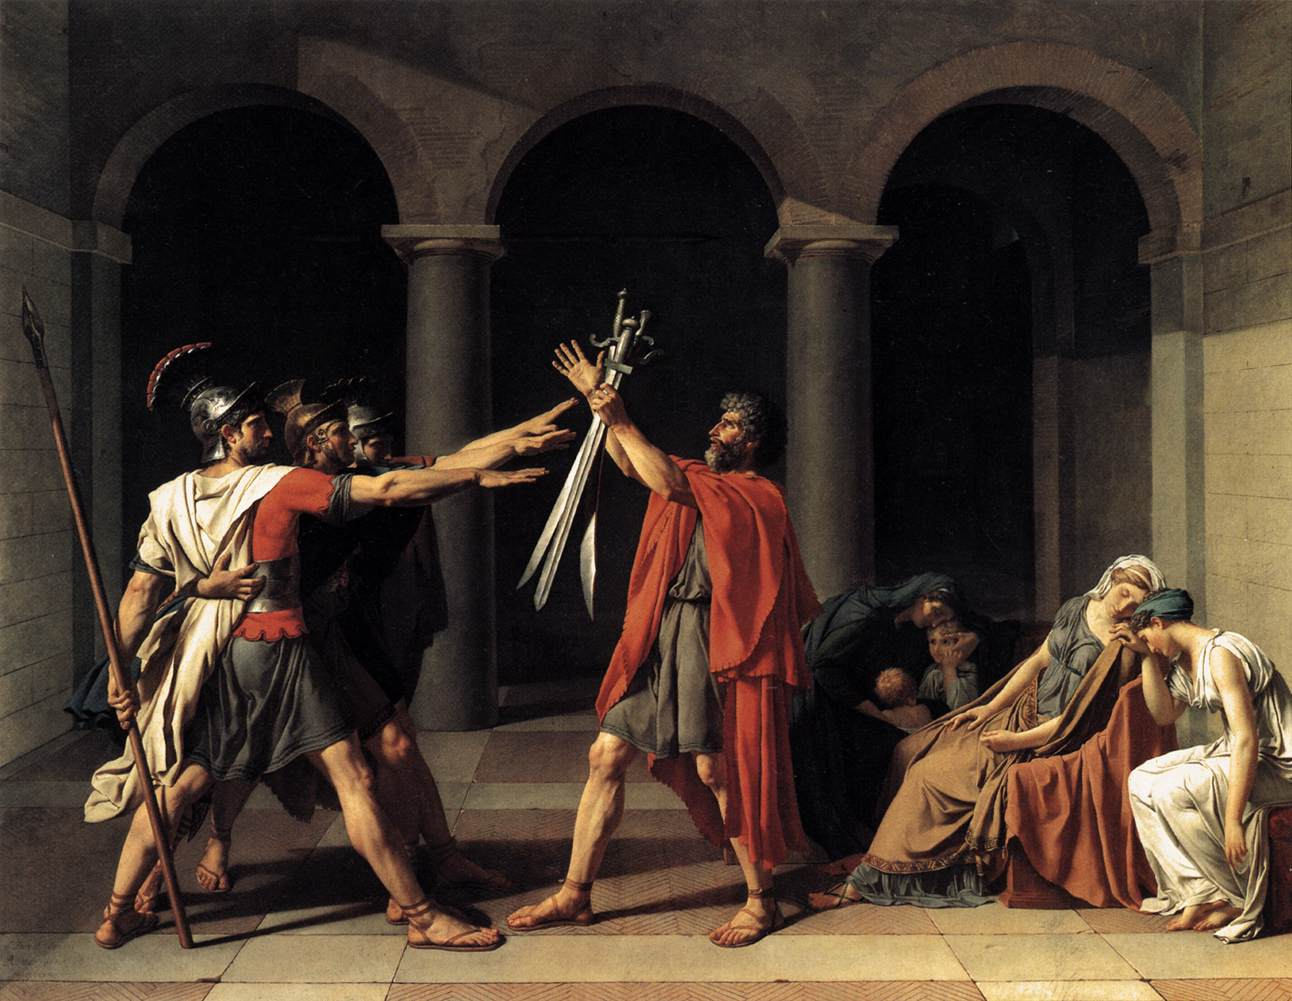 Jacques-Louis David, 'Oath of the Horatii', 1784. Reproduced from Wikimedia Commons -  https://commons.wikimedia.org/wiki/File:David-Oath_of_the_Horatii-1784.jpg